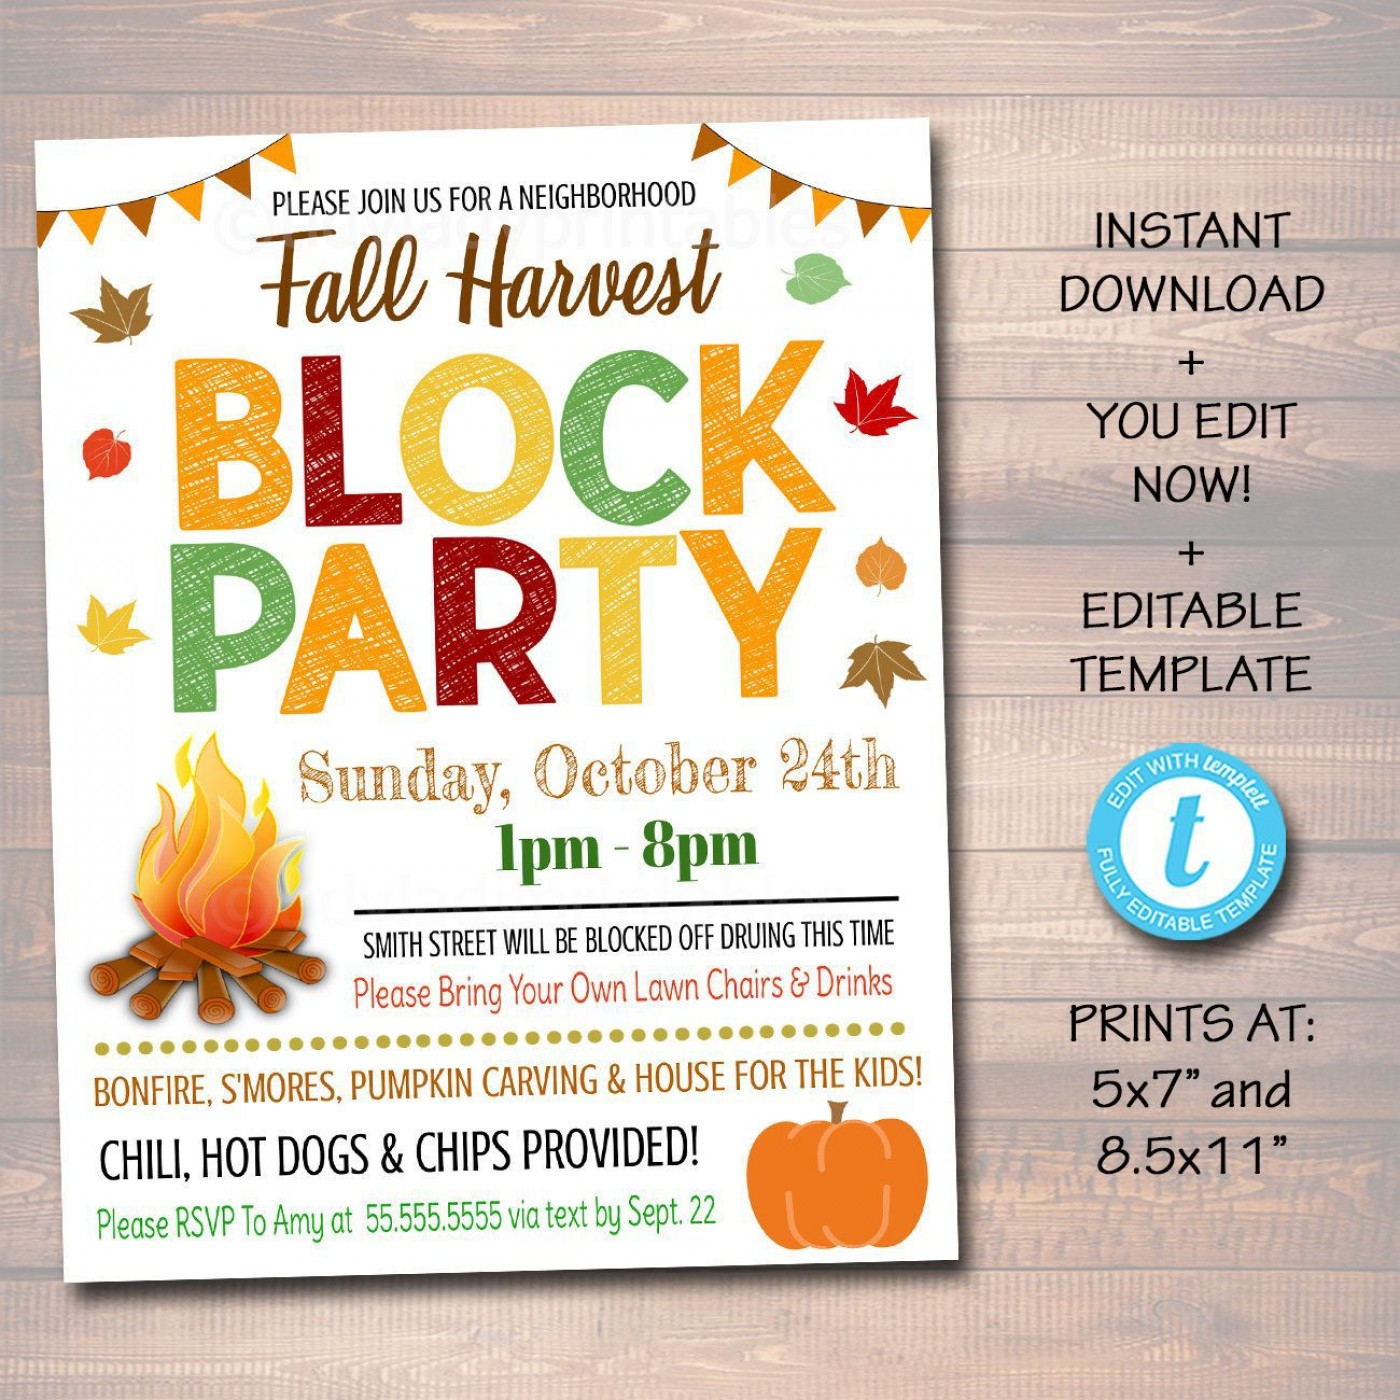 002 Rare Block Party Flyer Template Photo  Free1400